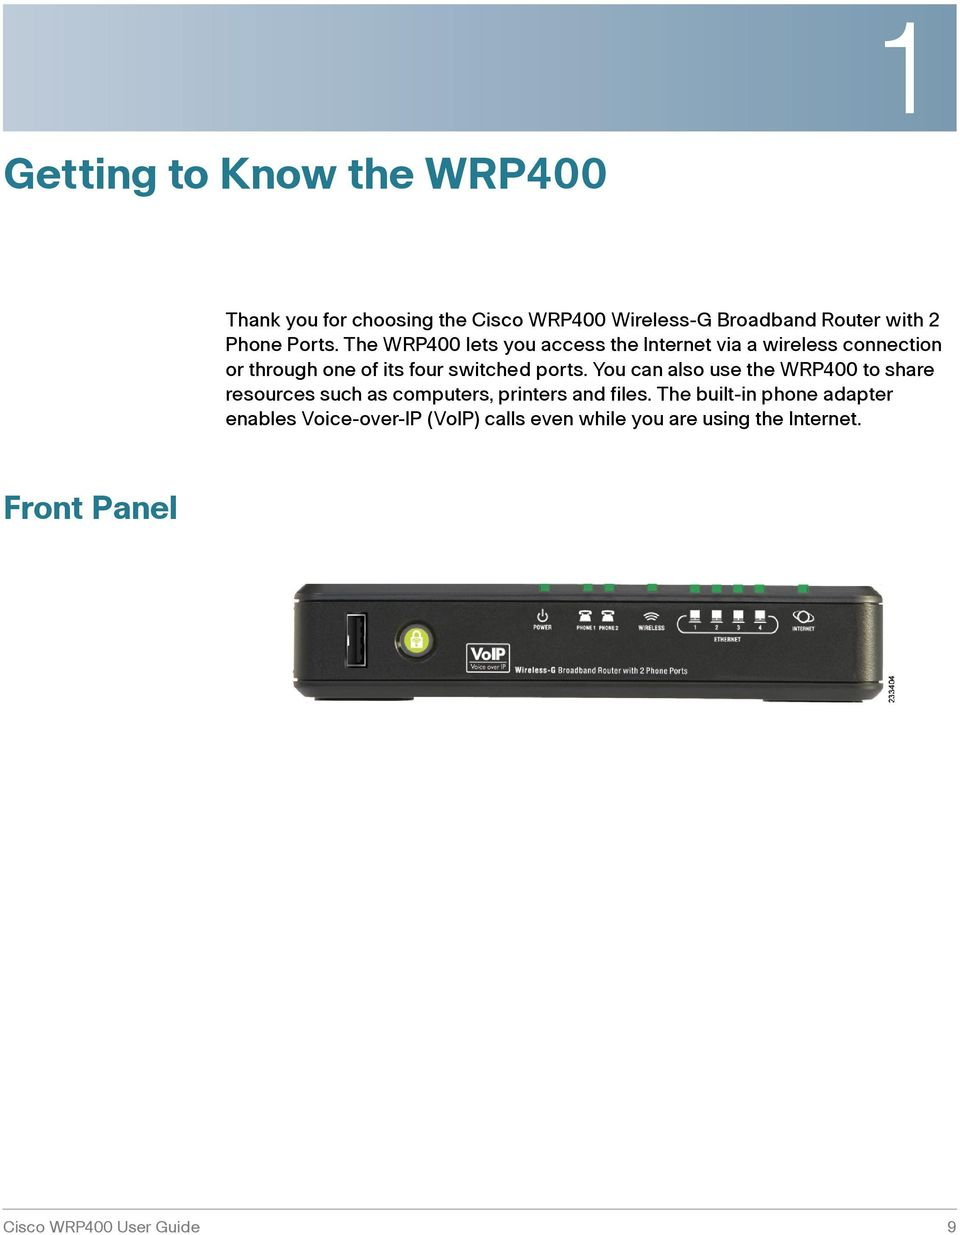 The WRP400 lets you access the Internet via a wireless connection or through one of its four switched ports.